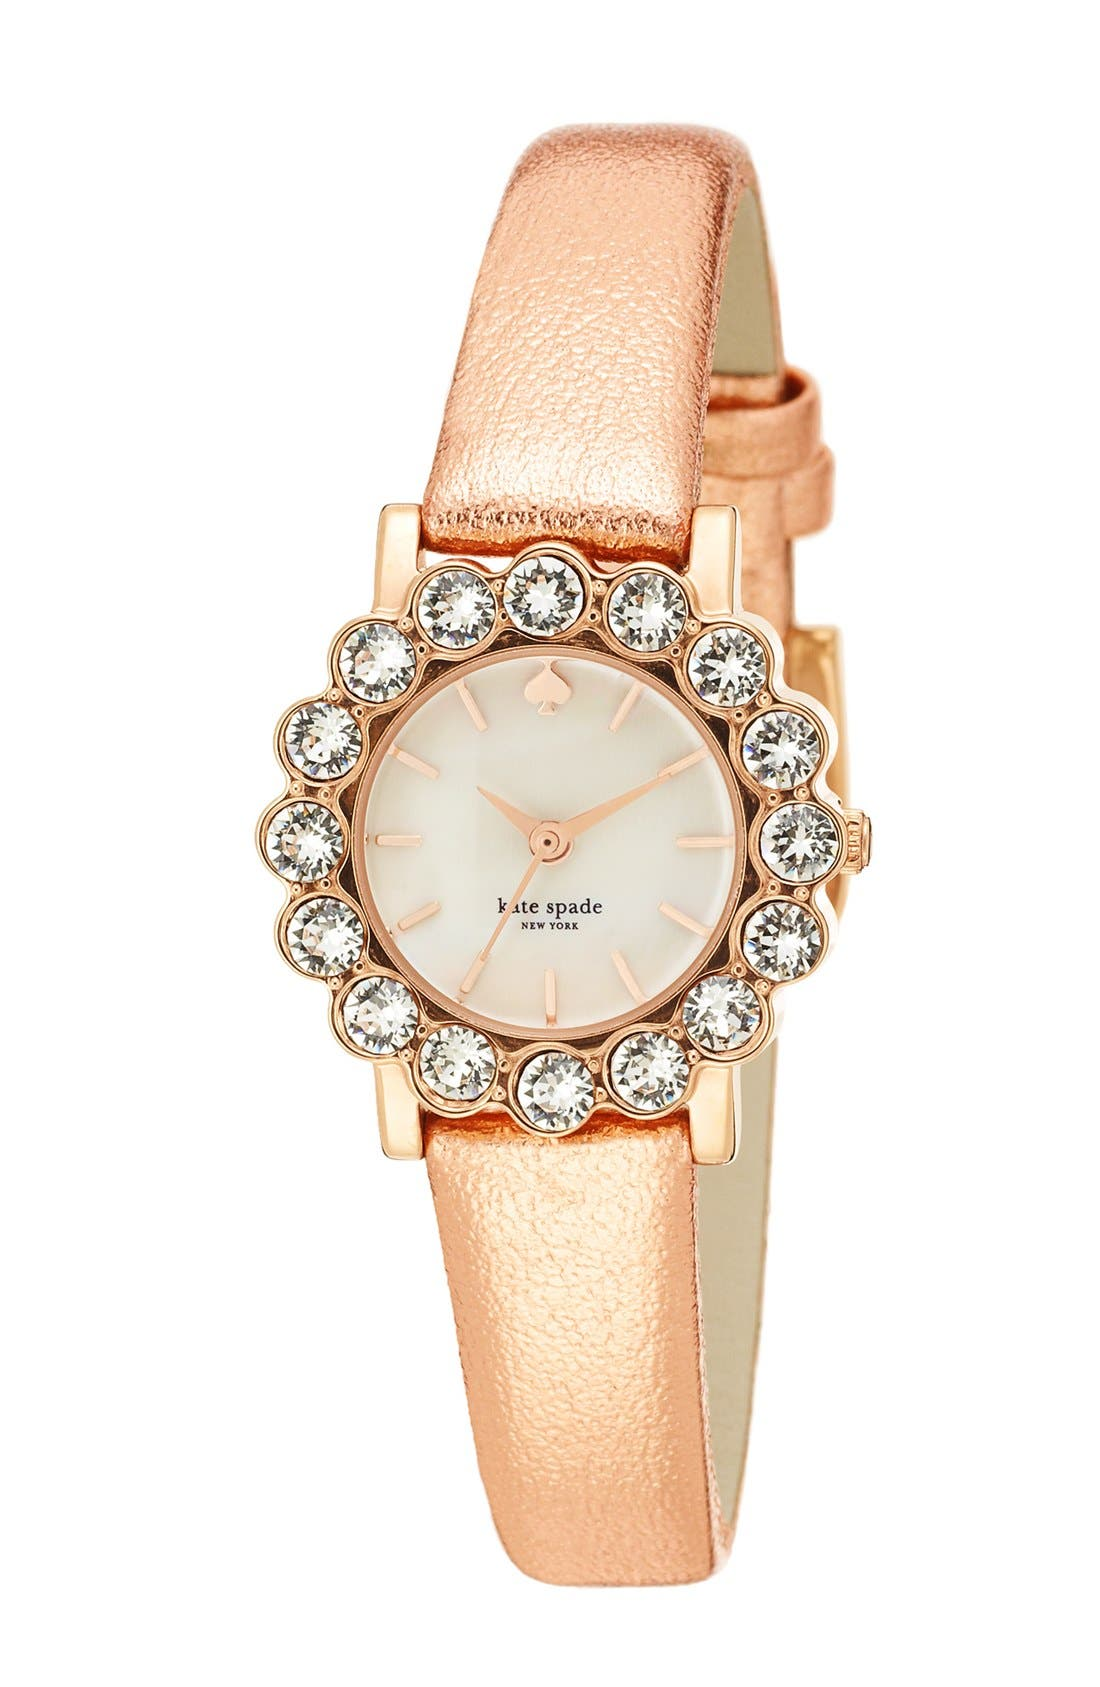 Main Image - kate spade new york 'belvedere' crystal bezel watch, 24mm